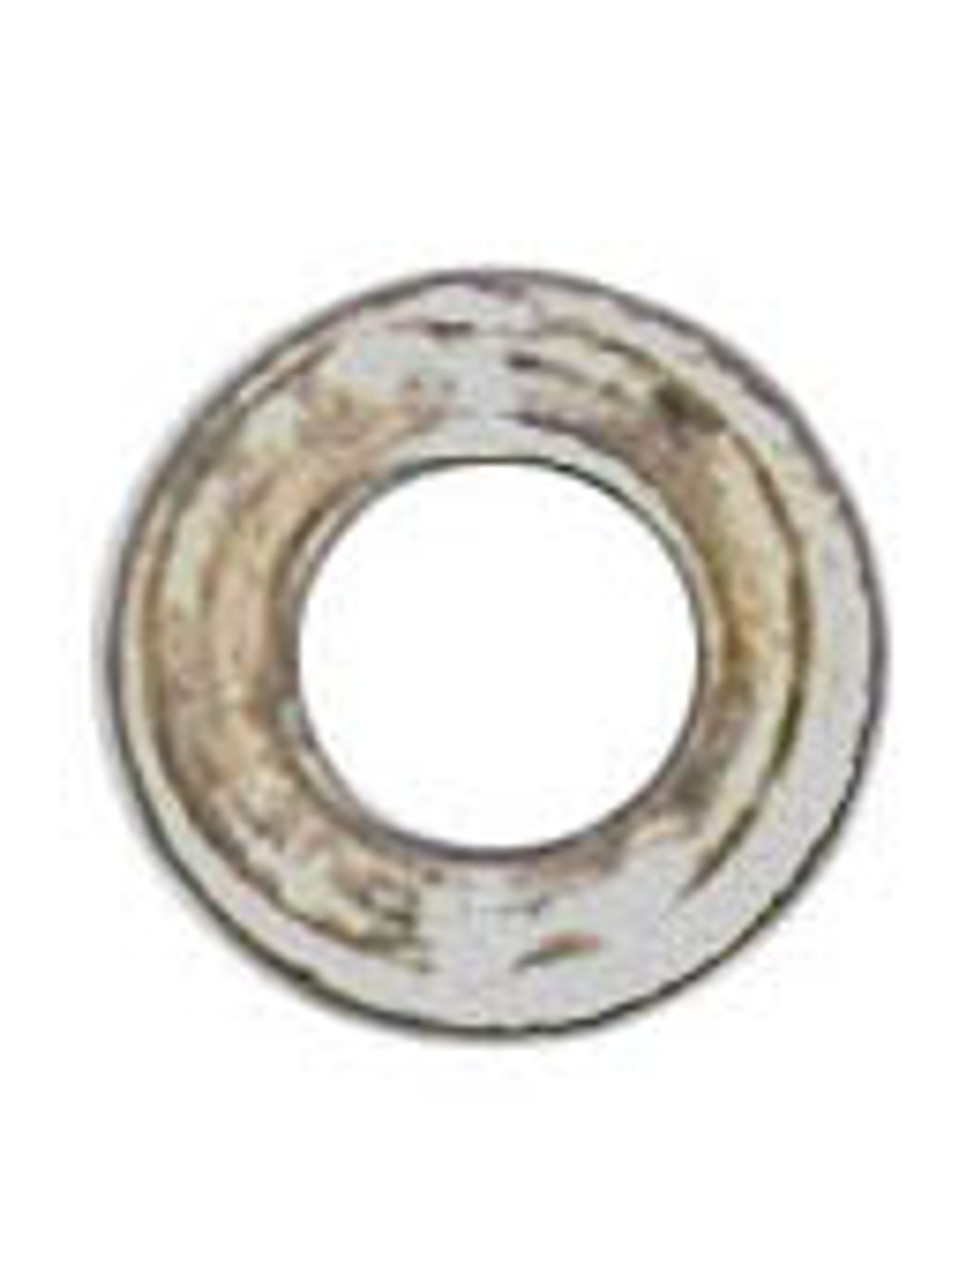 5-142 --- Anchor Post Washer for 7,200 lb Capacity Dexter Electric Brake